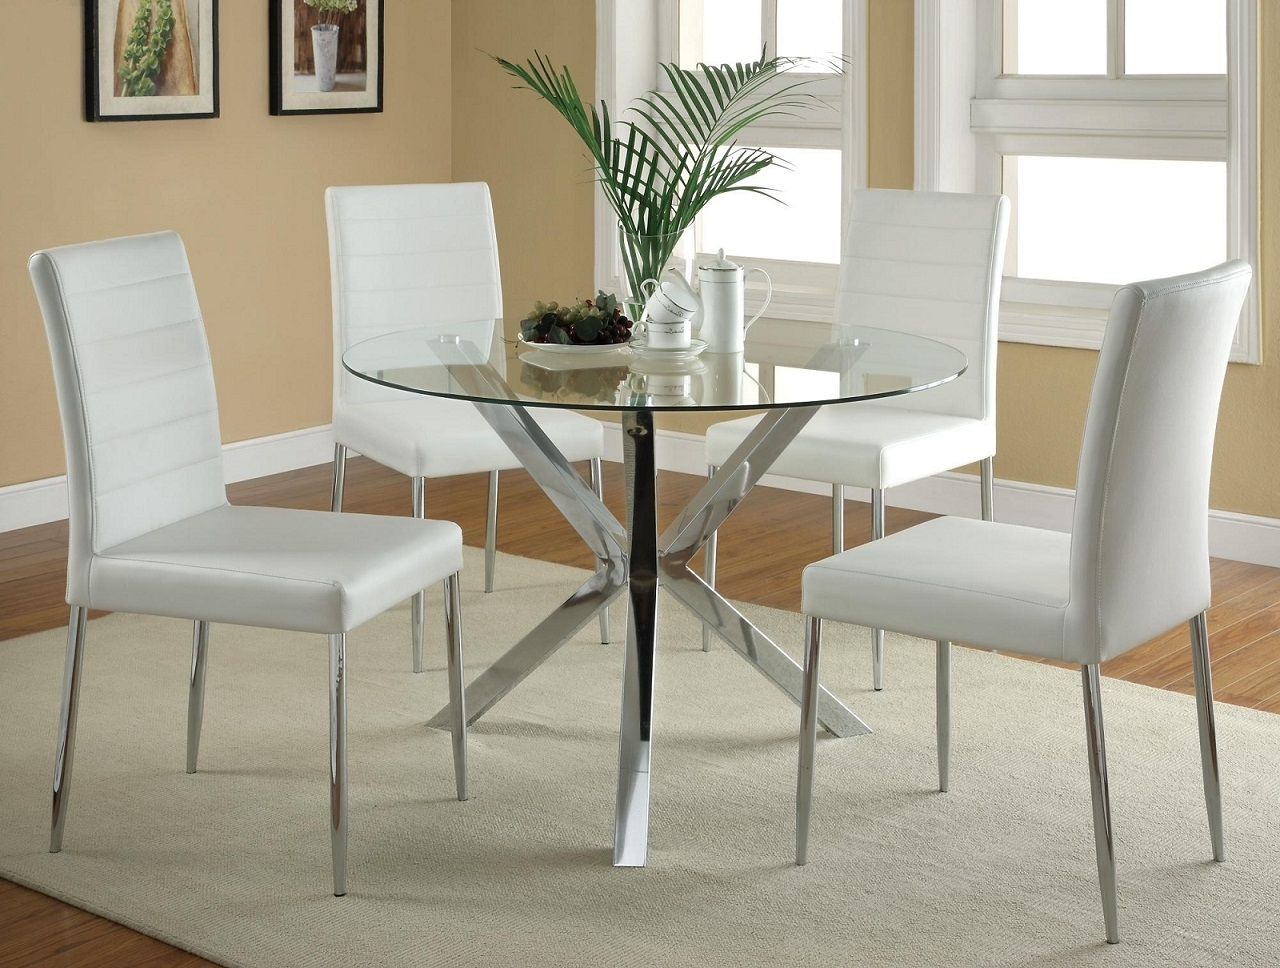 Latest Chrome Dining Tables And Chairs Pertaining To Setchglditaw Glass And Chrome Dining Table And Chairs Amazing Wood (View 19 of 25)